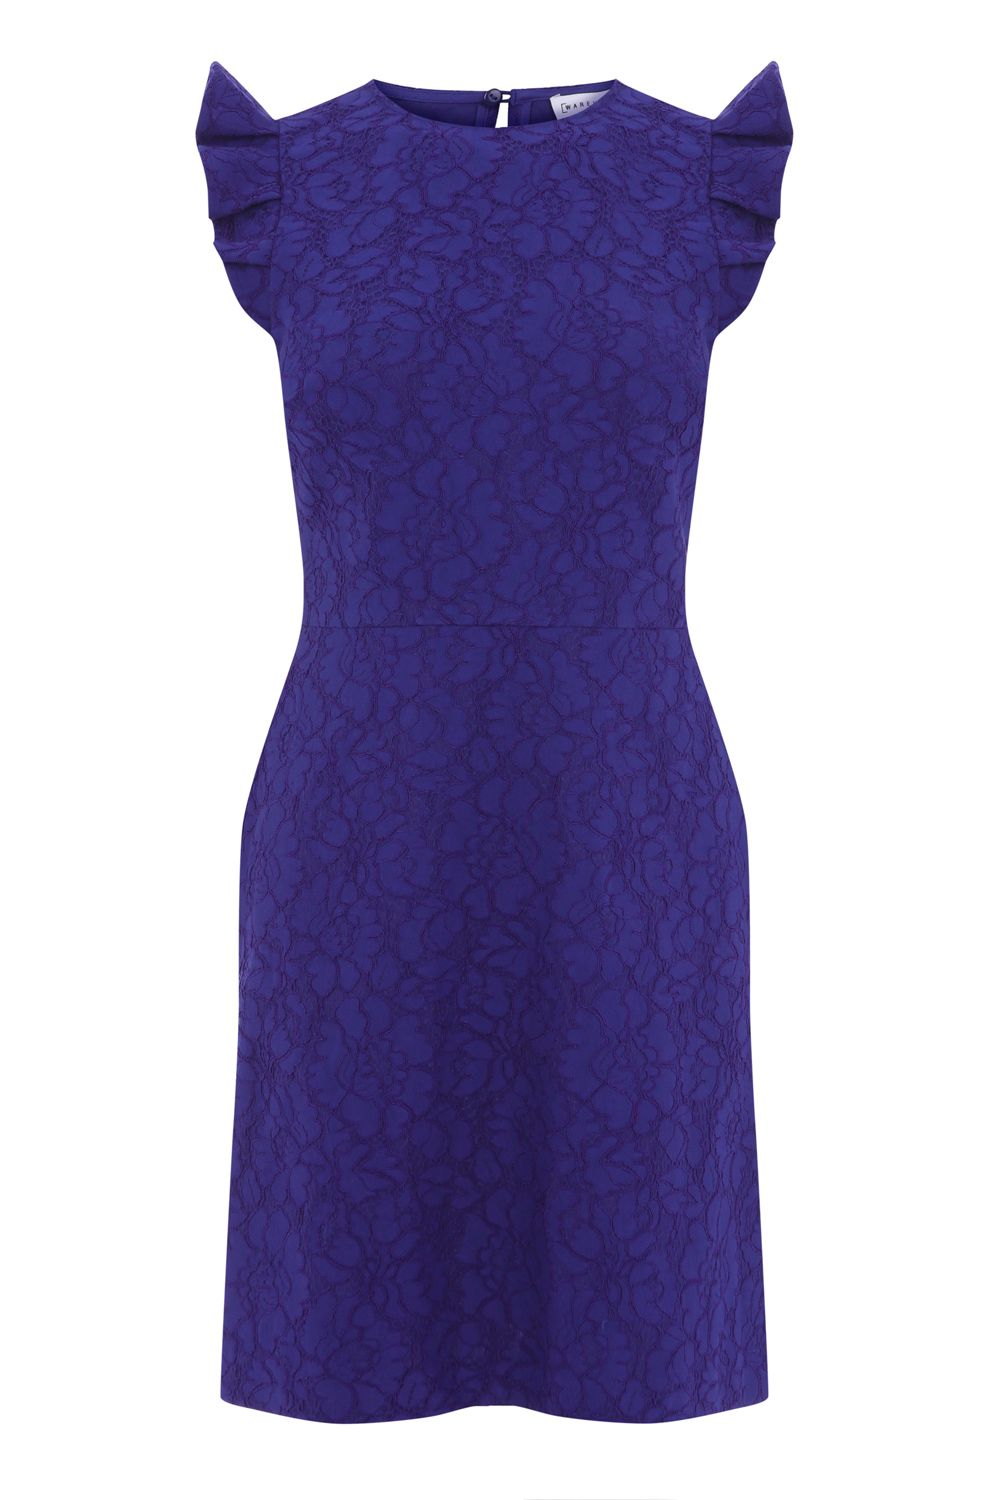 Warehouse Frill Sleeve Bonded Lace Dress, Dark Purple